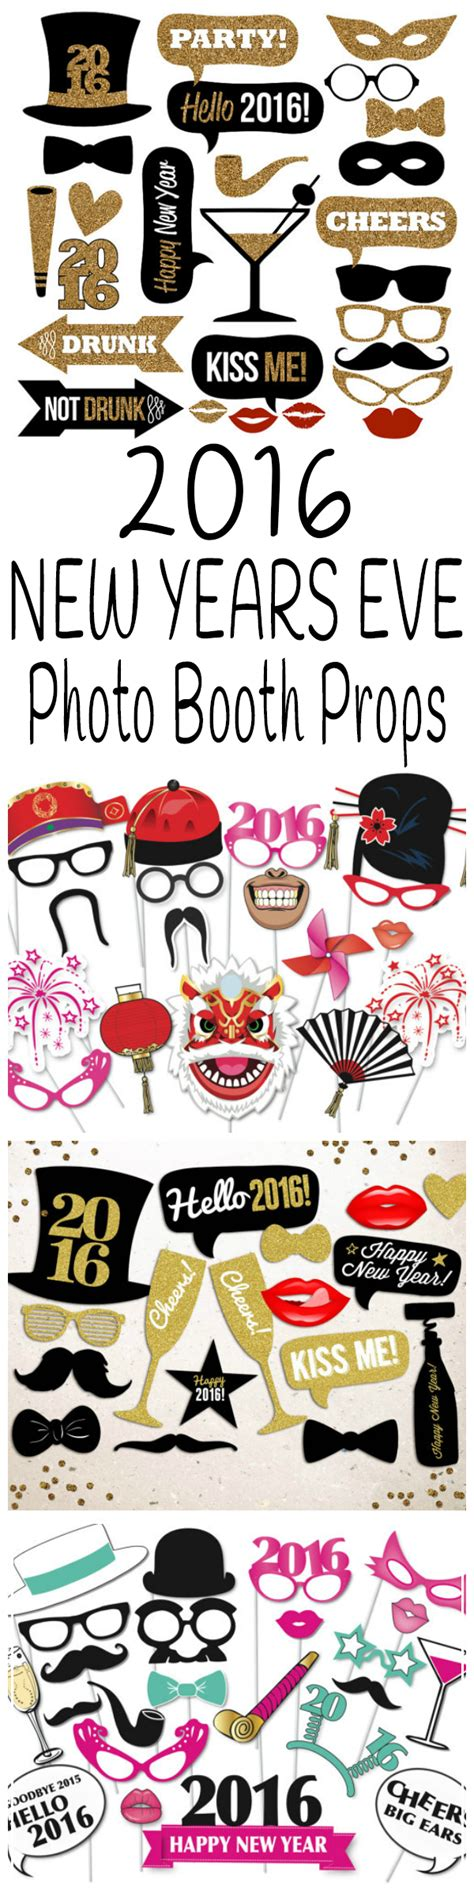 new year photo booth props 2016 new years photo booth props glitter n spice